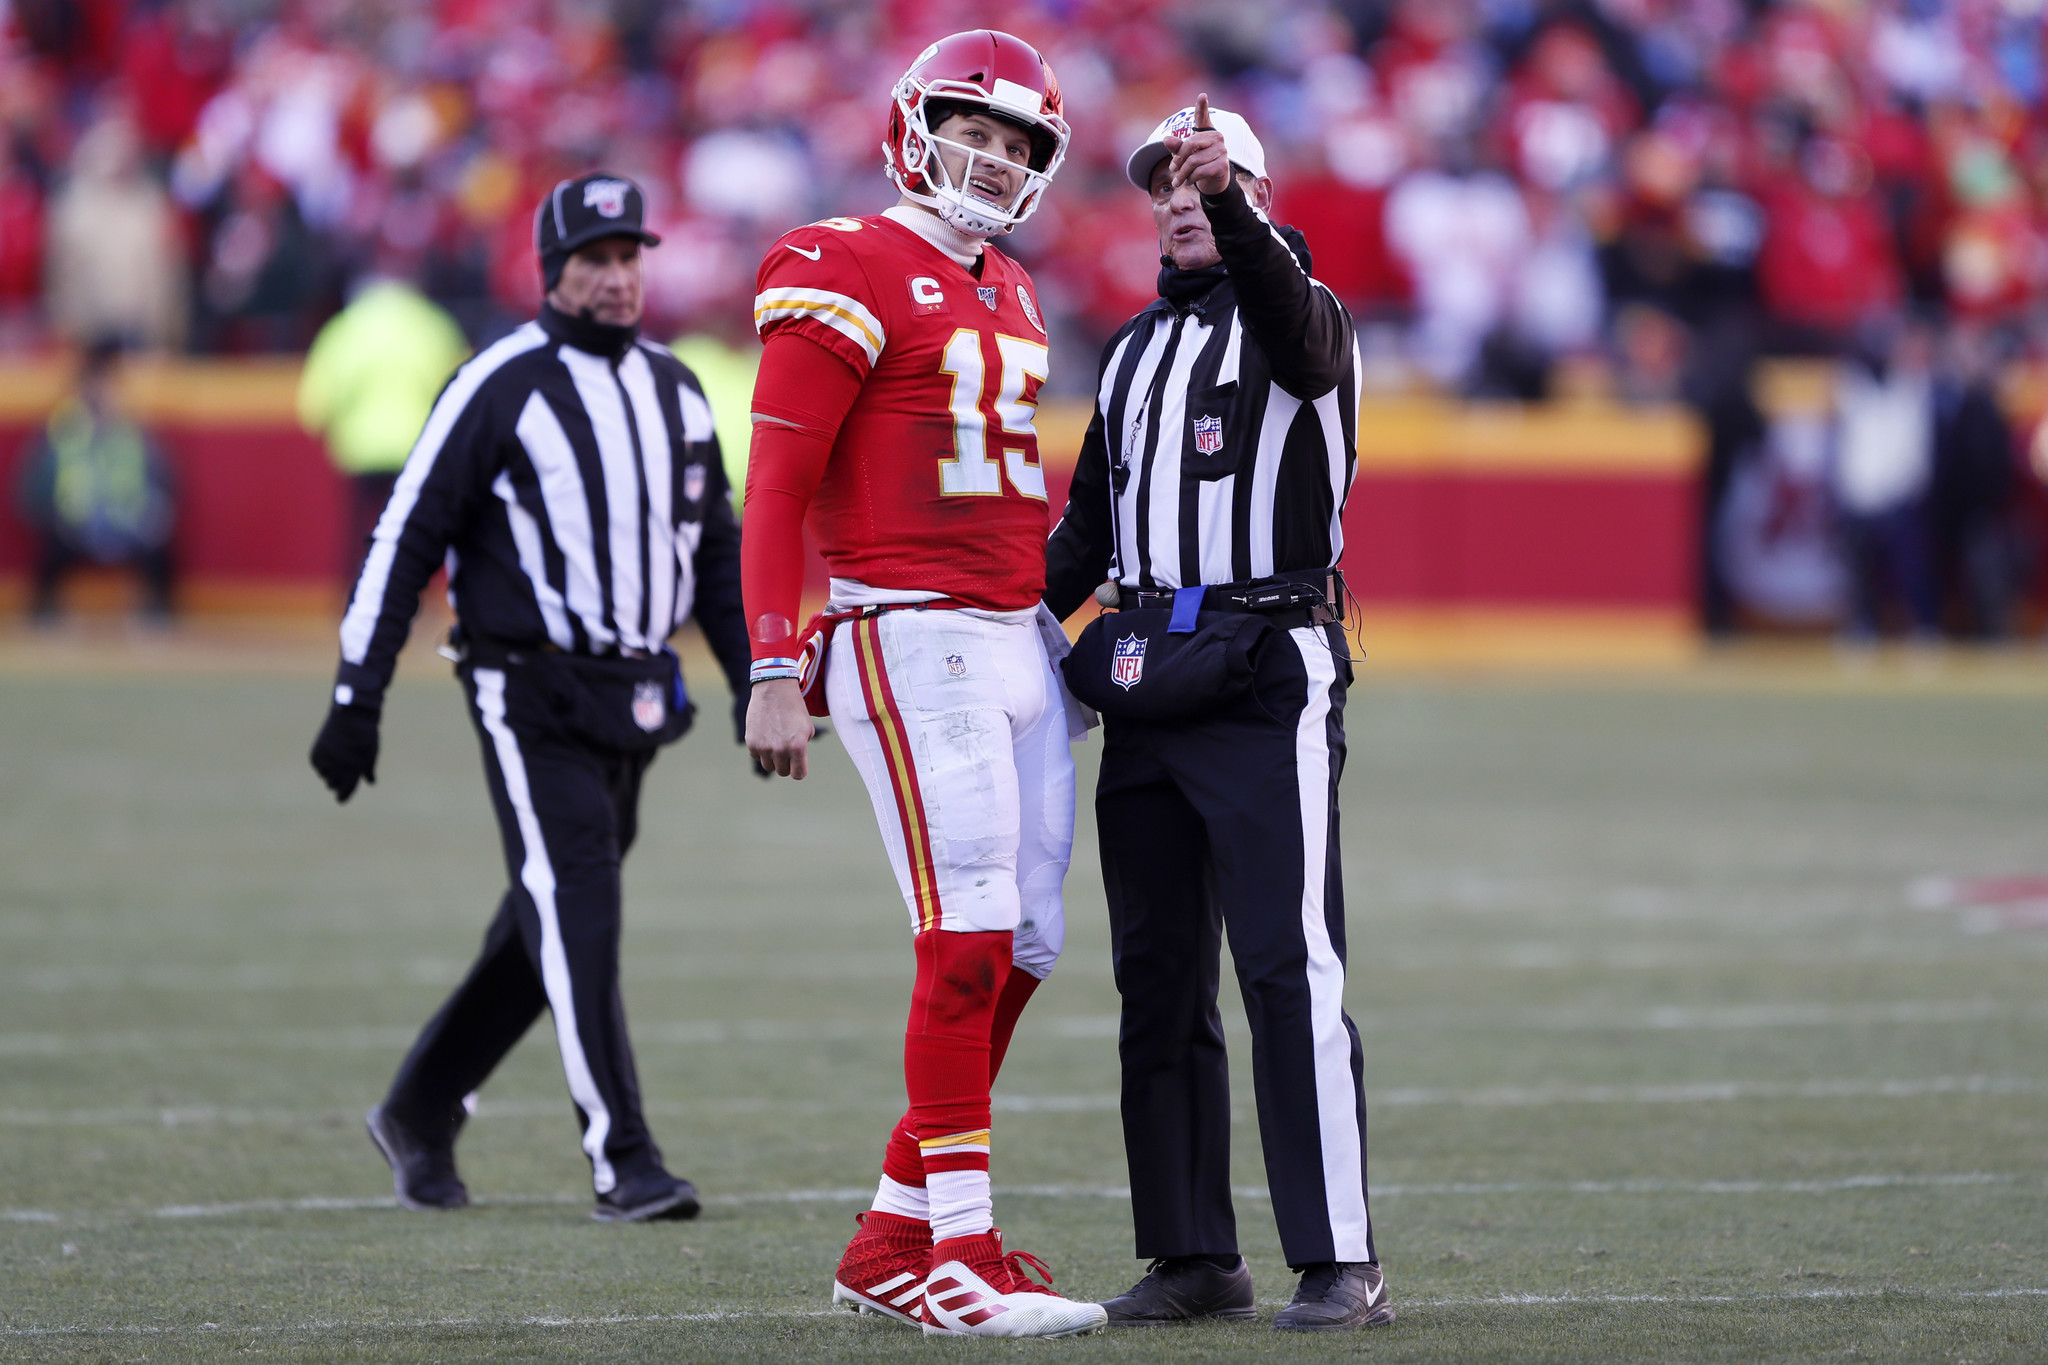 NFL referee gets trucked by Chiefs special teams